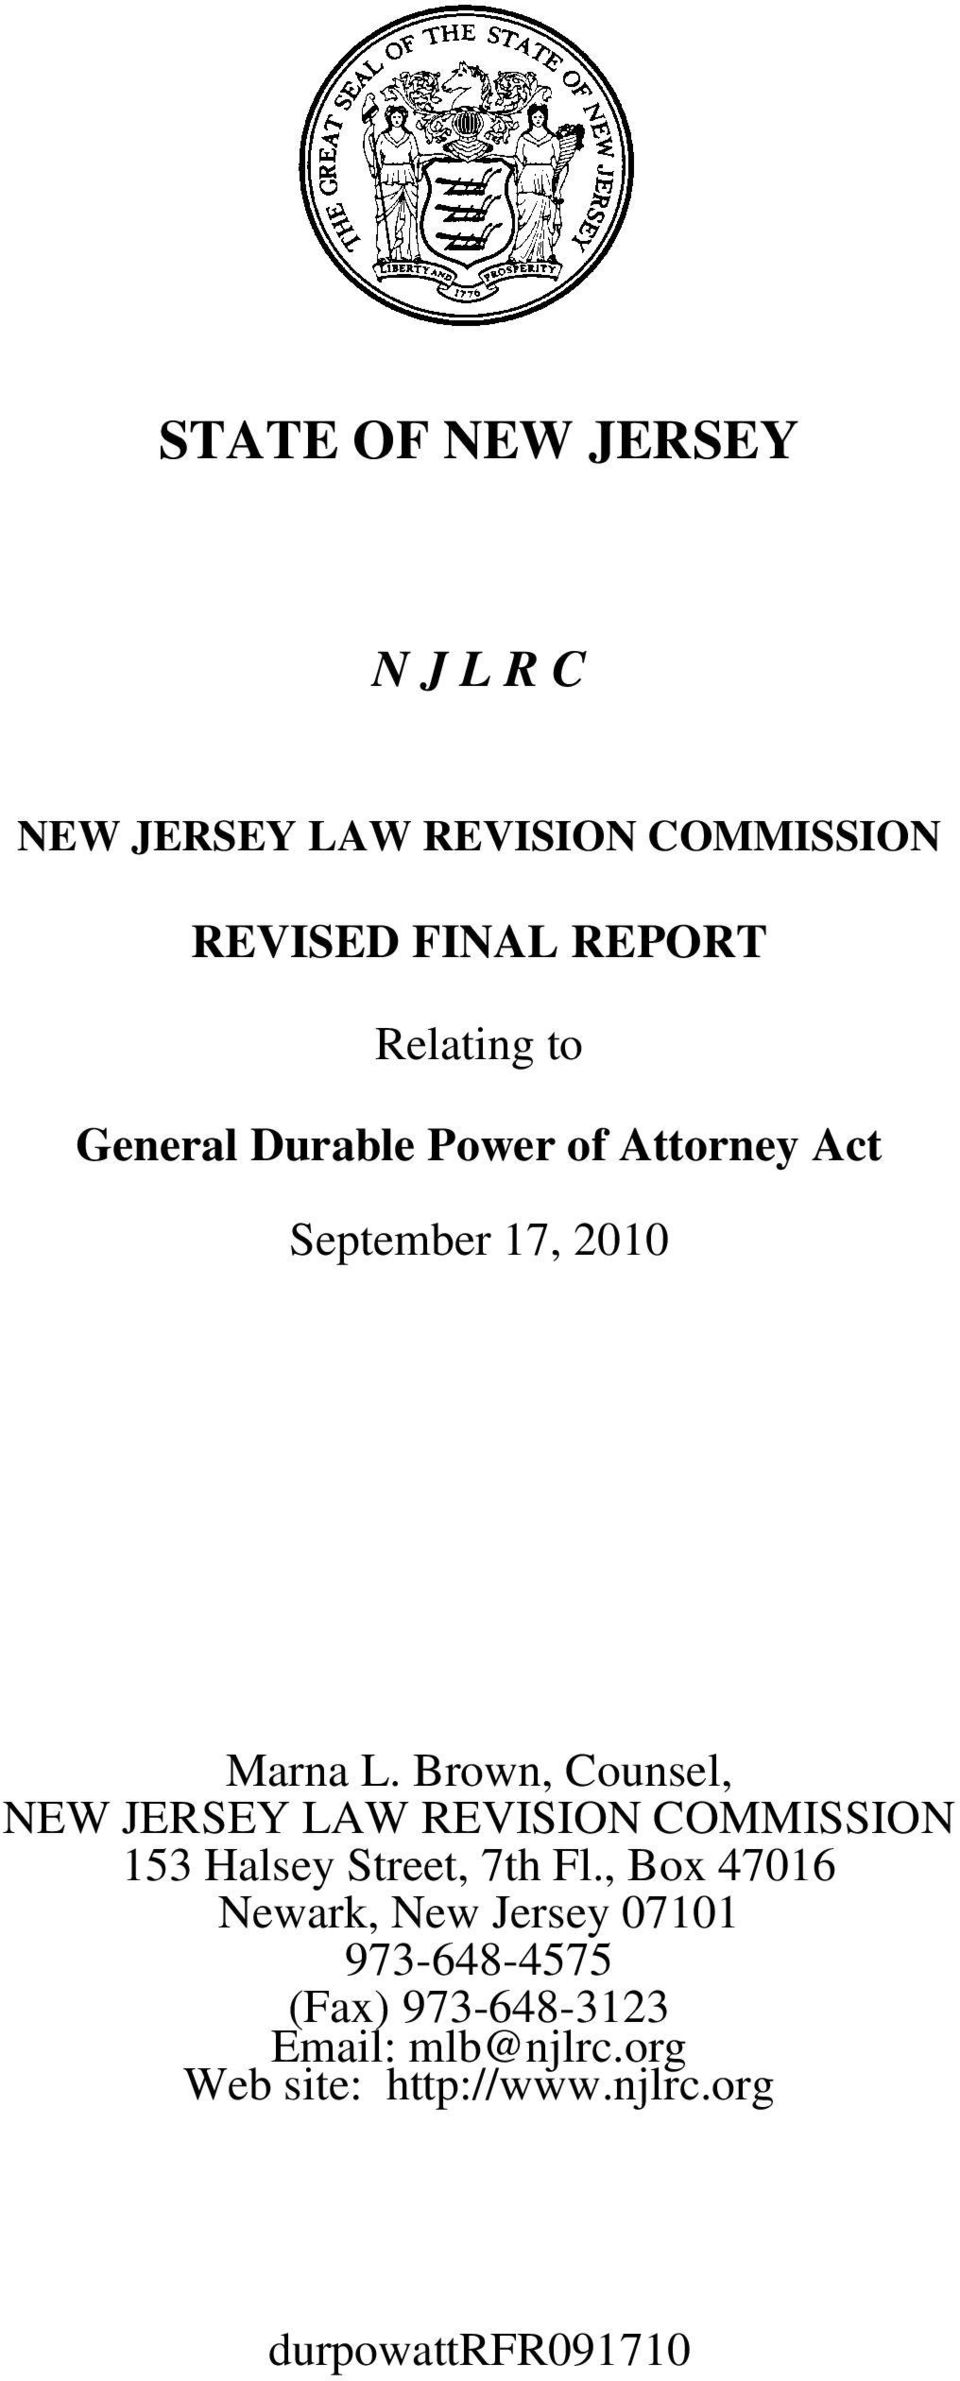 Brown, Counsel, NEW JERSEY LAW REVISION COMMISSION 153 Halsey Street, 7th Fl.